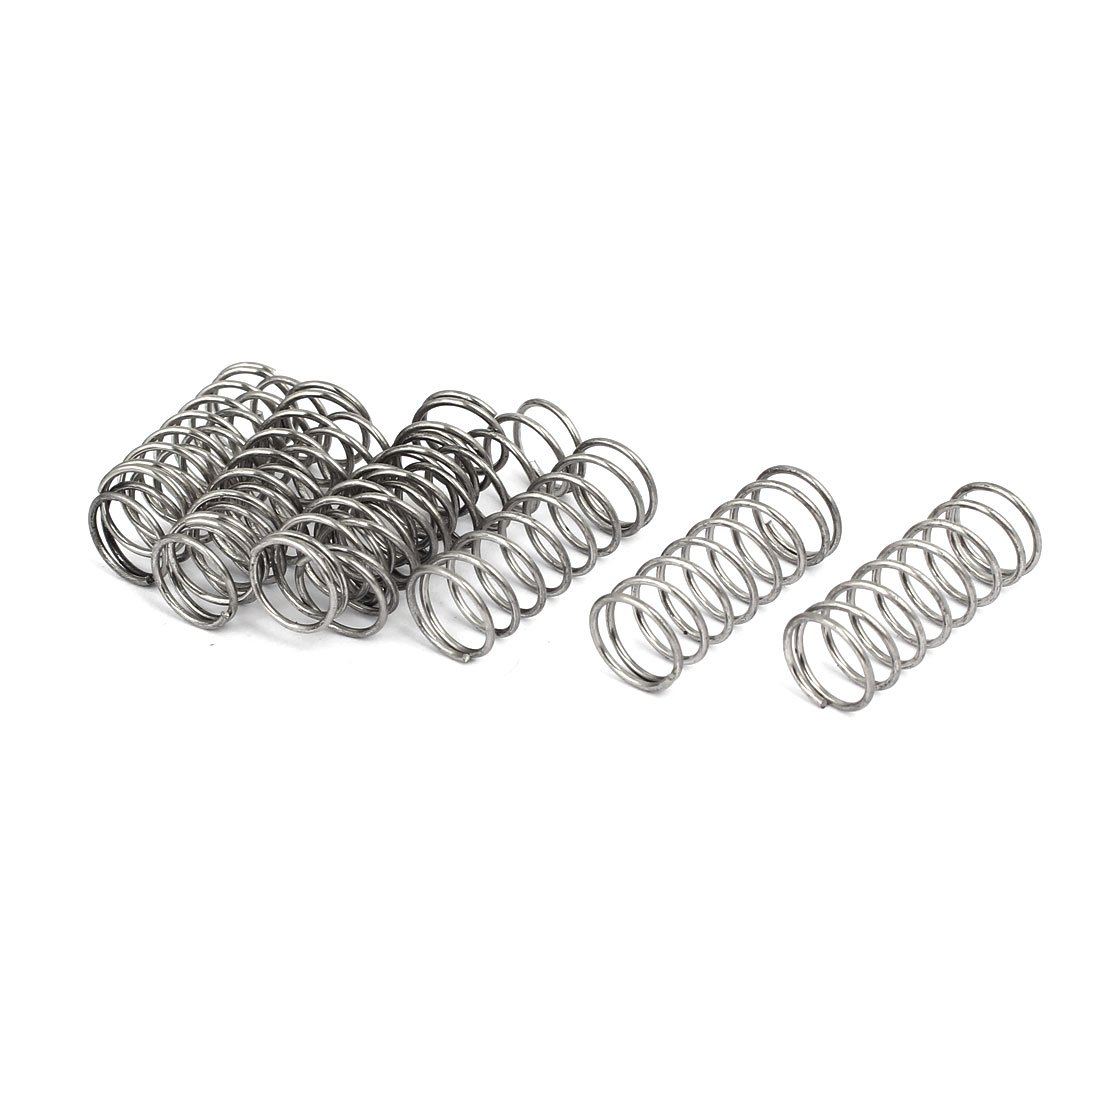 uxcell 1mmx12mmx30mm 304 Stainless Steel Compression Springs Silver Tone 10pcs